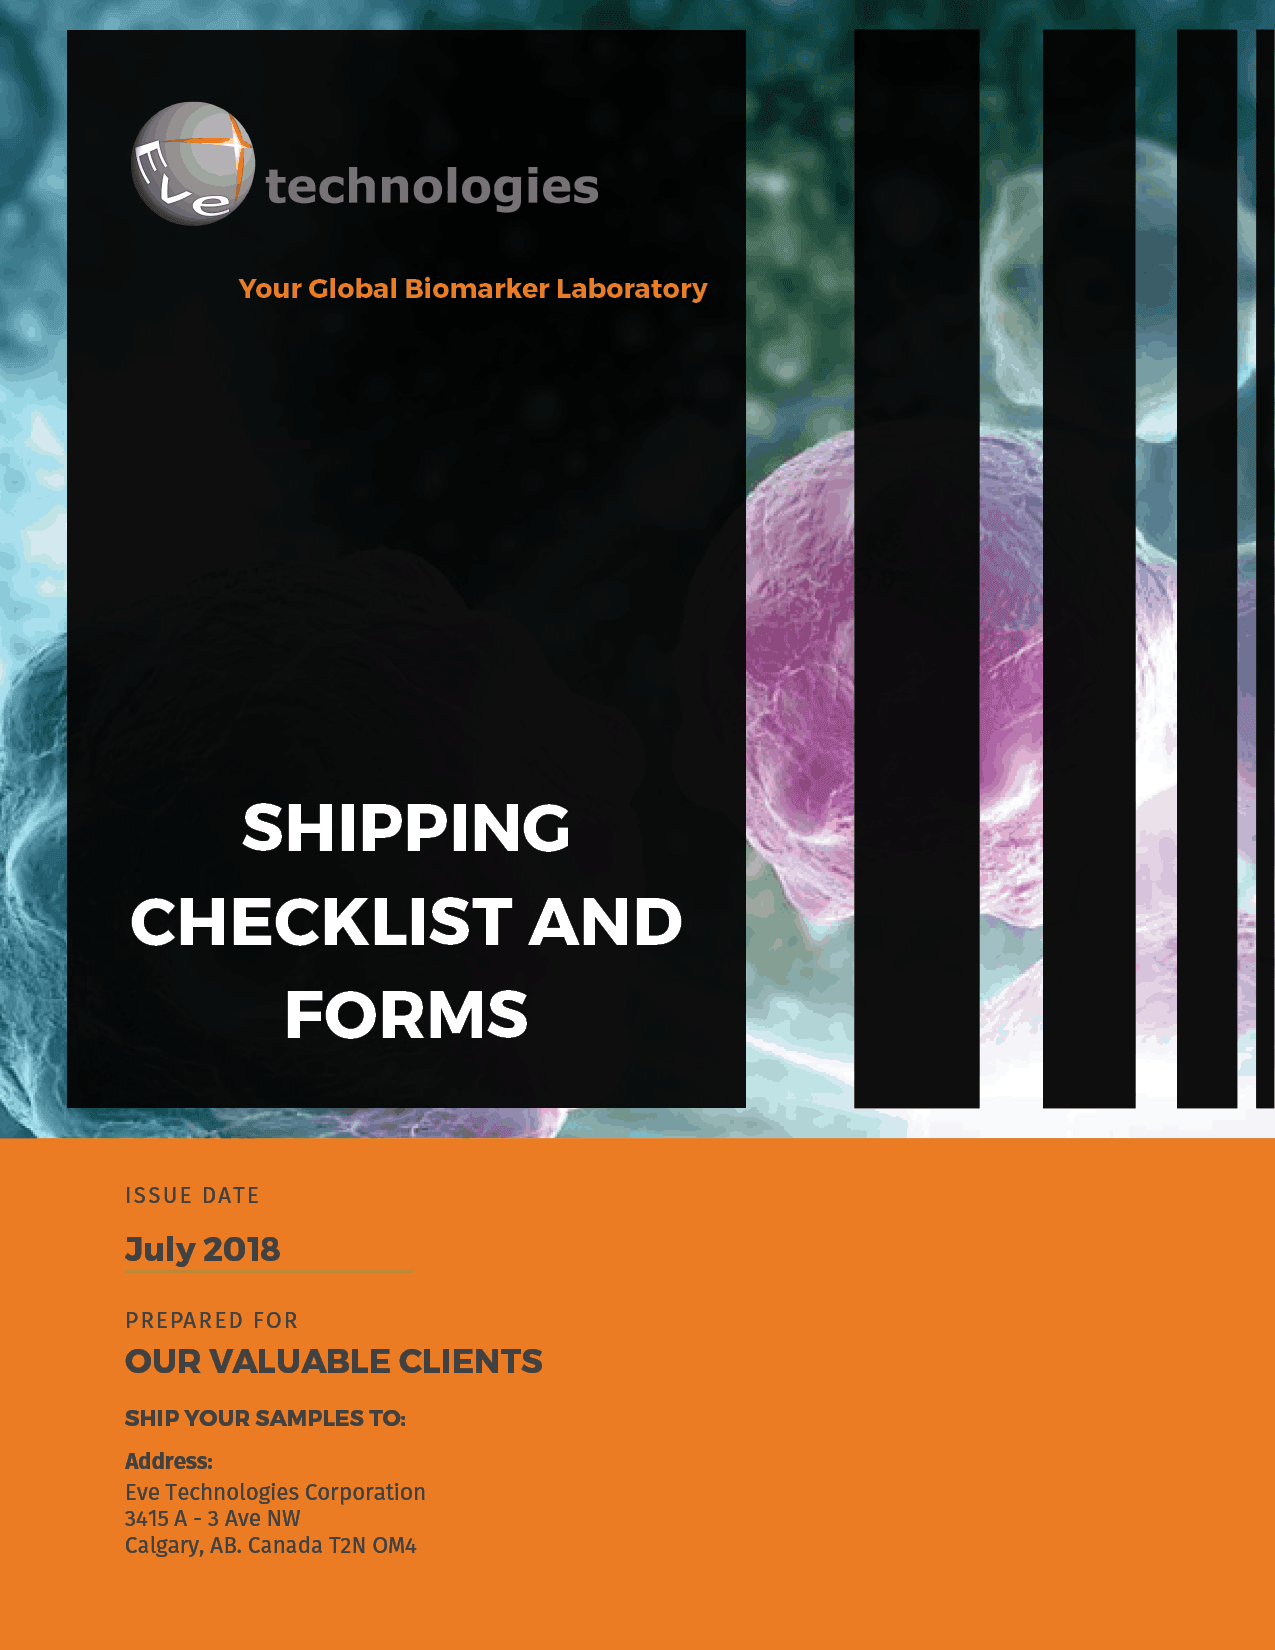 Shipping Checklist and Forms